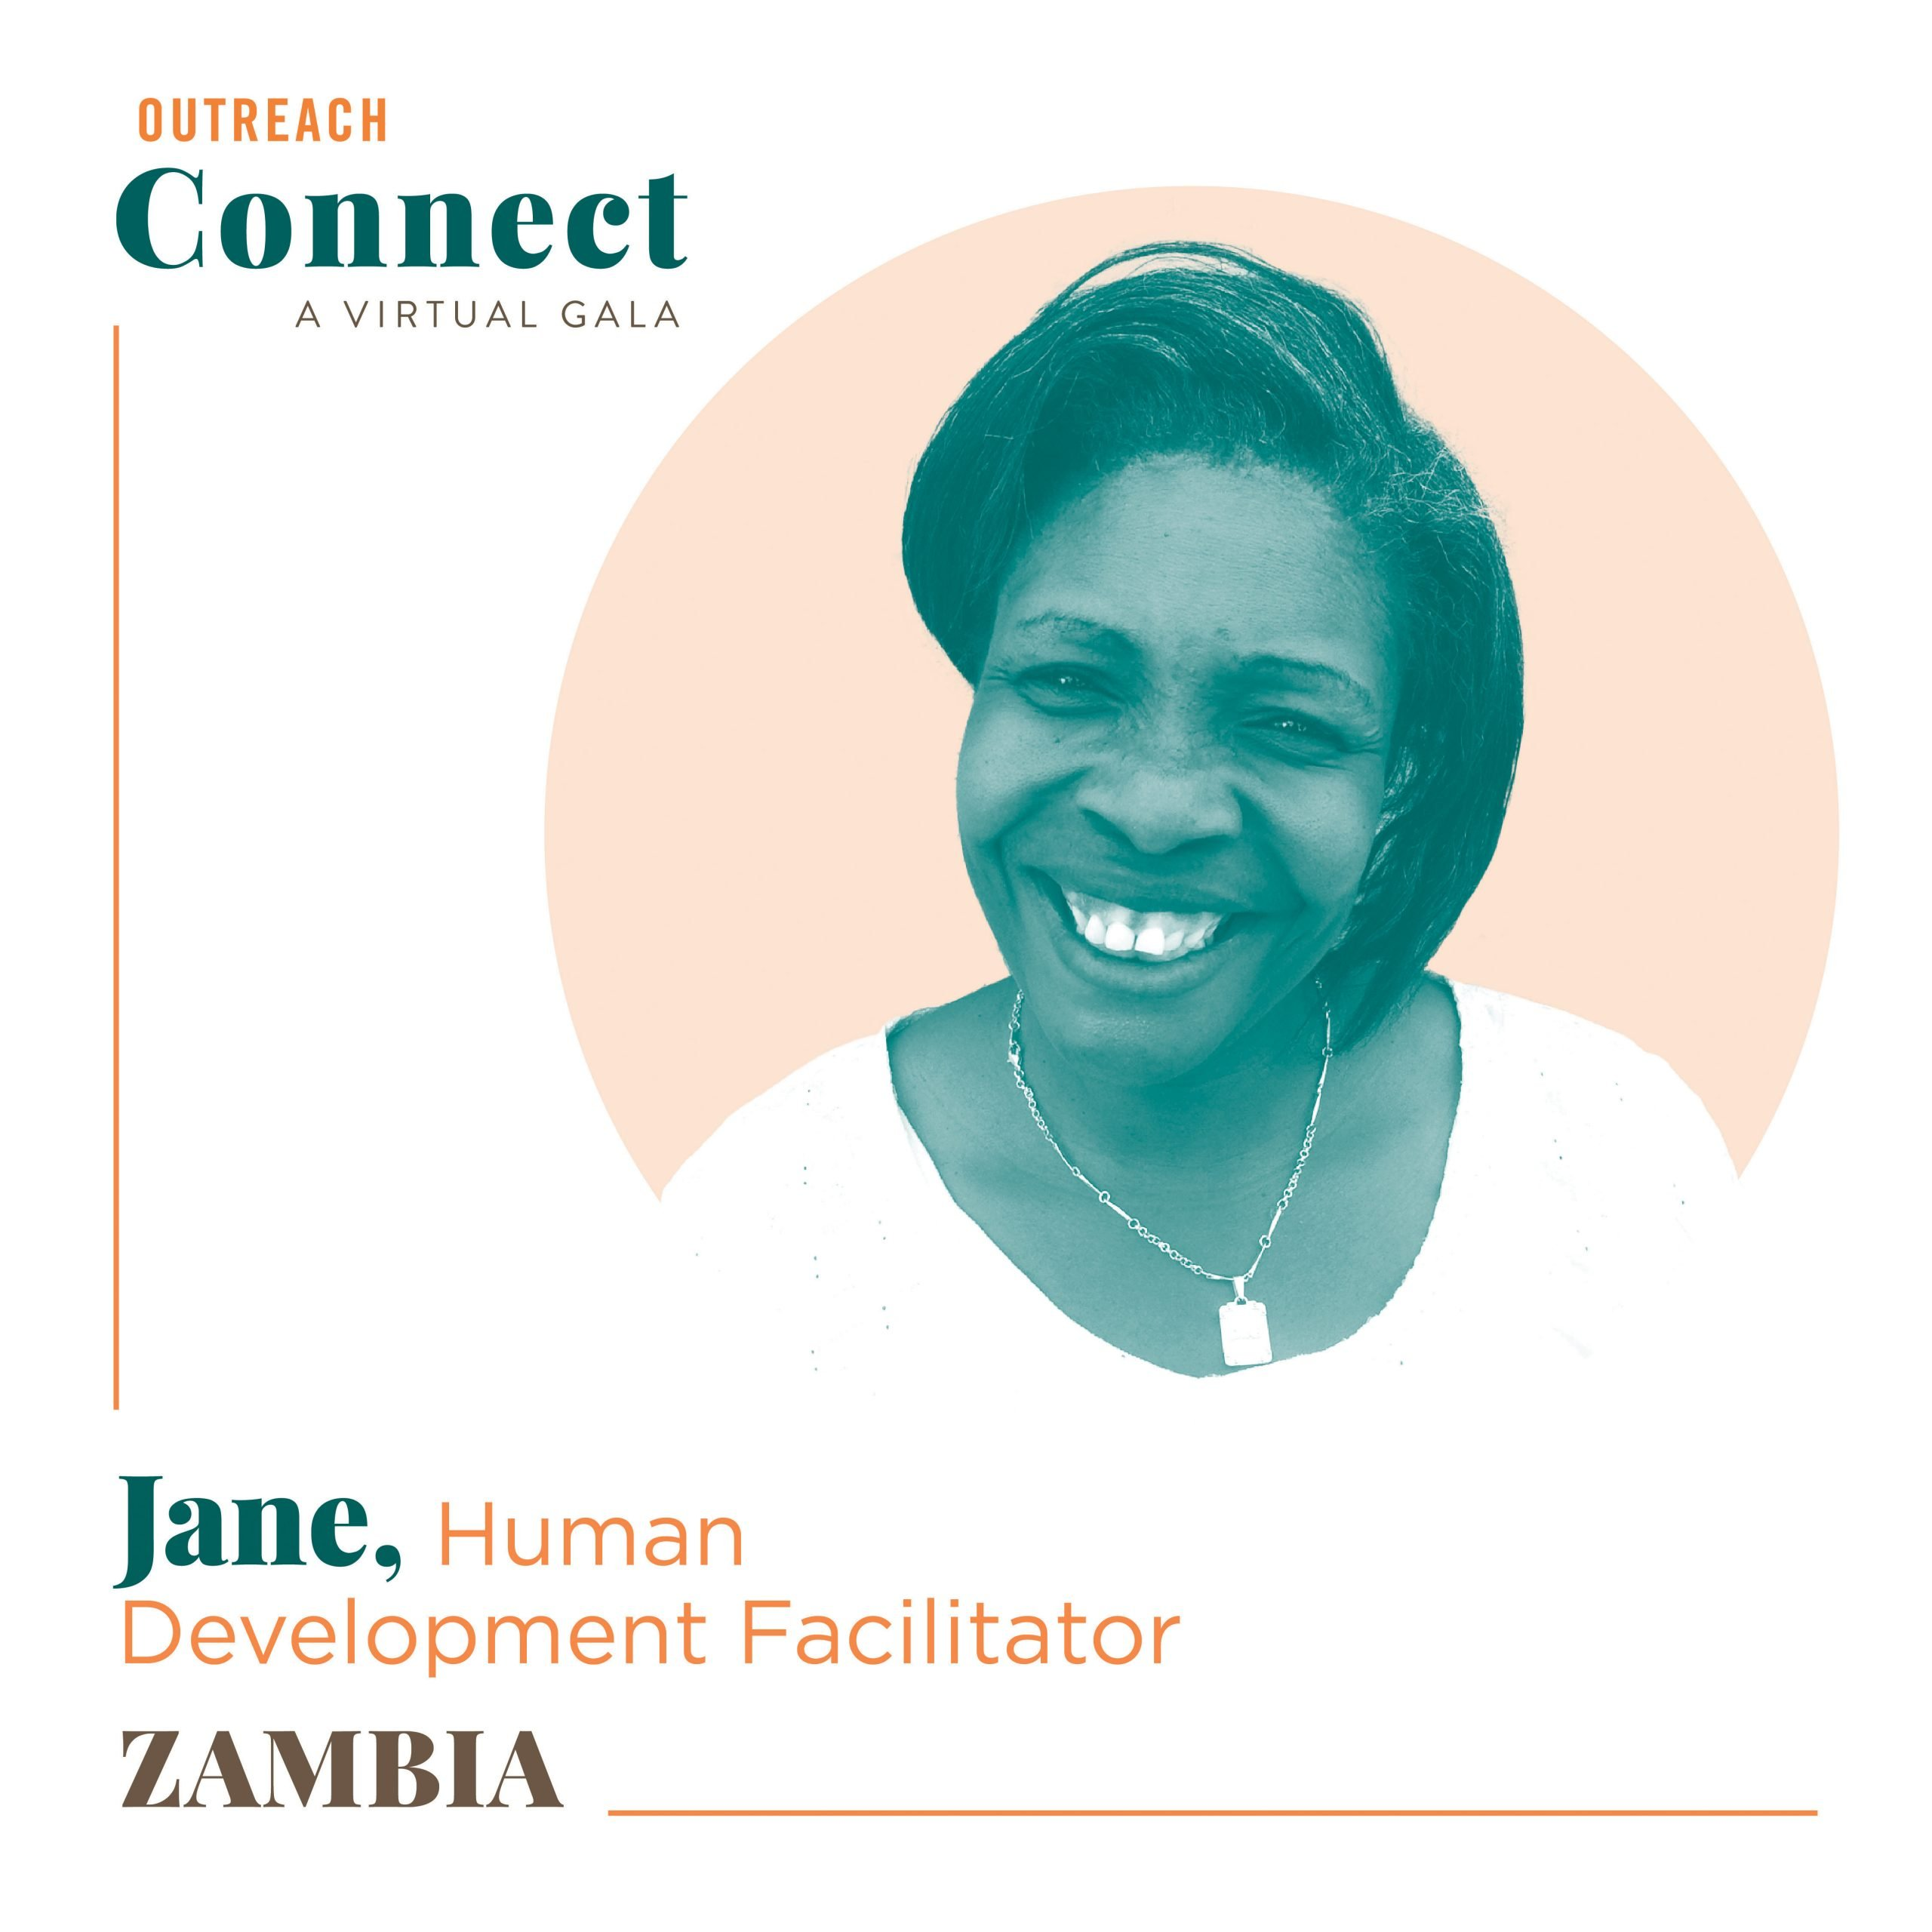 Jane, an Outreach HDF from Zambia